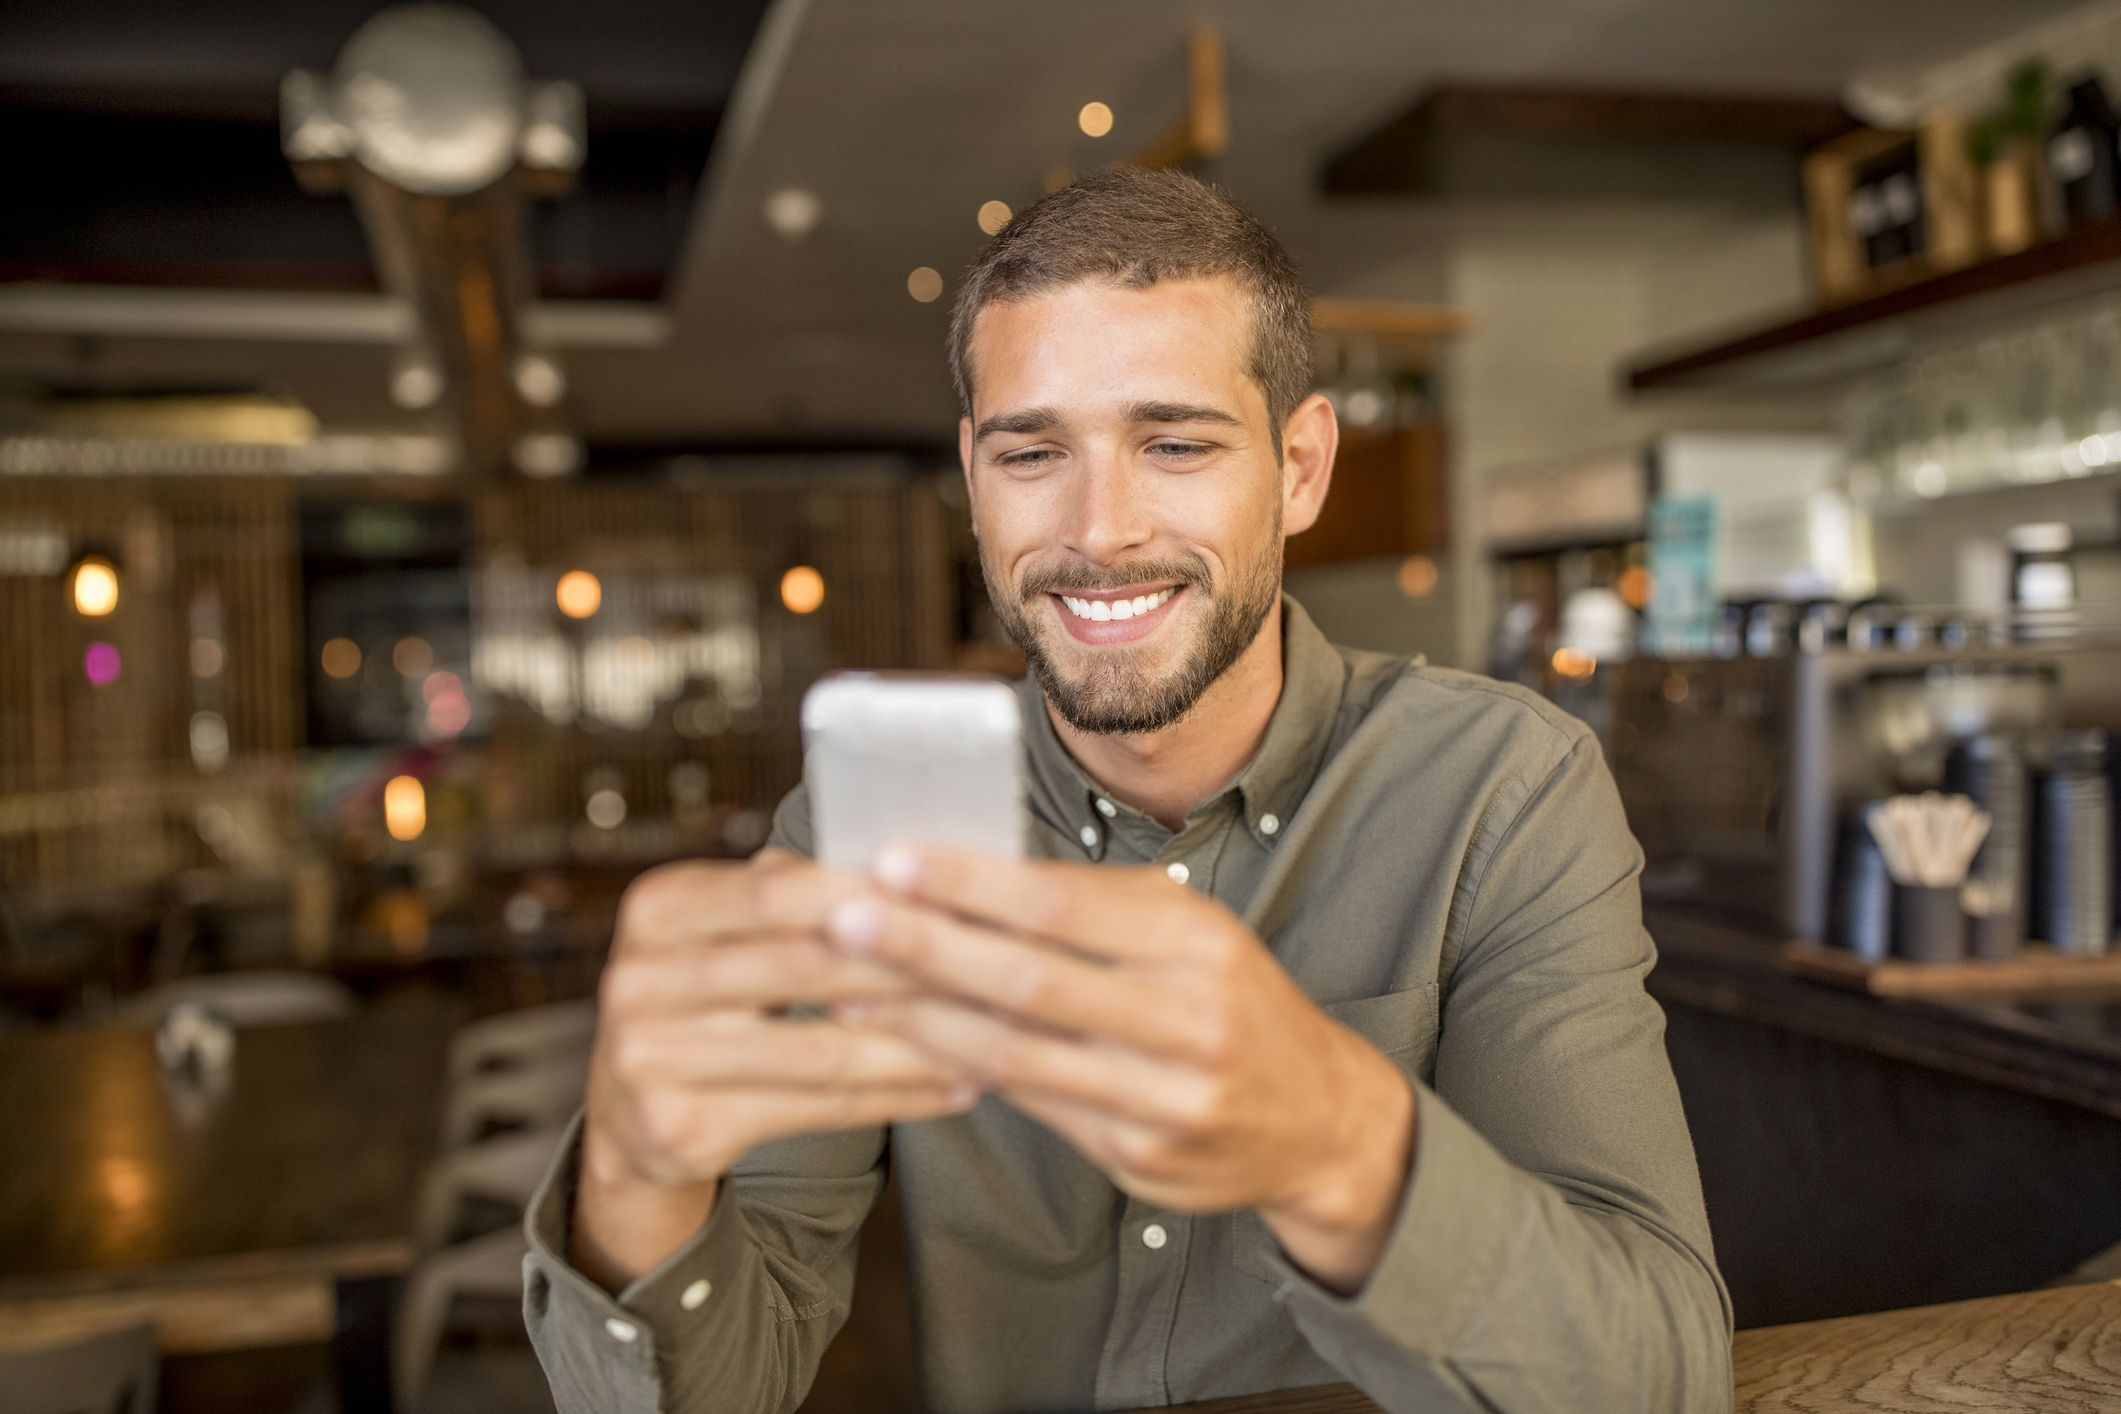 Smiling young man using smartphone in a cafe